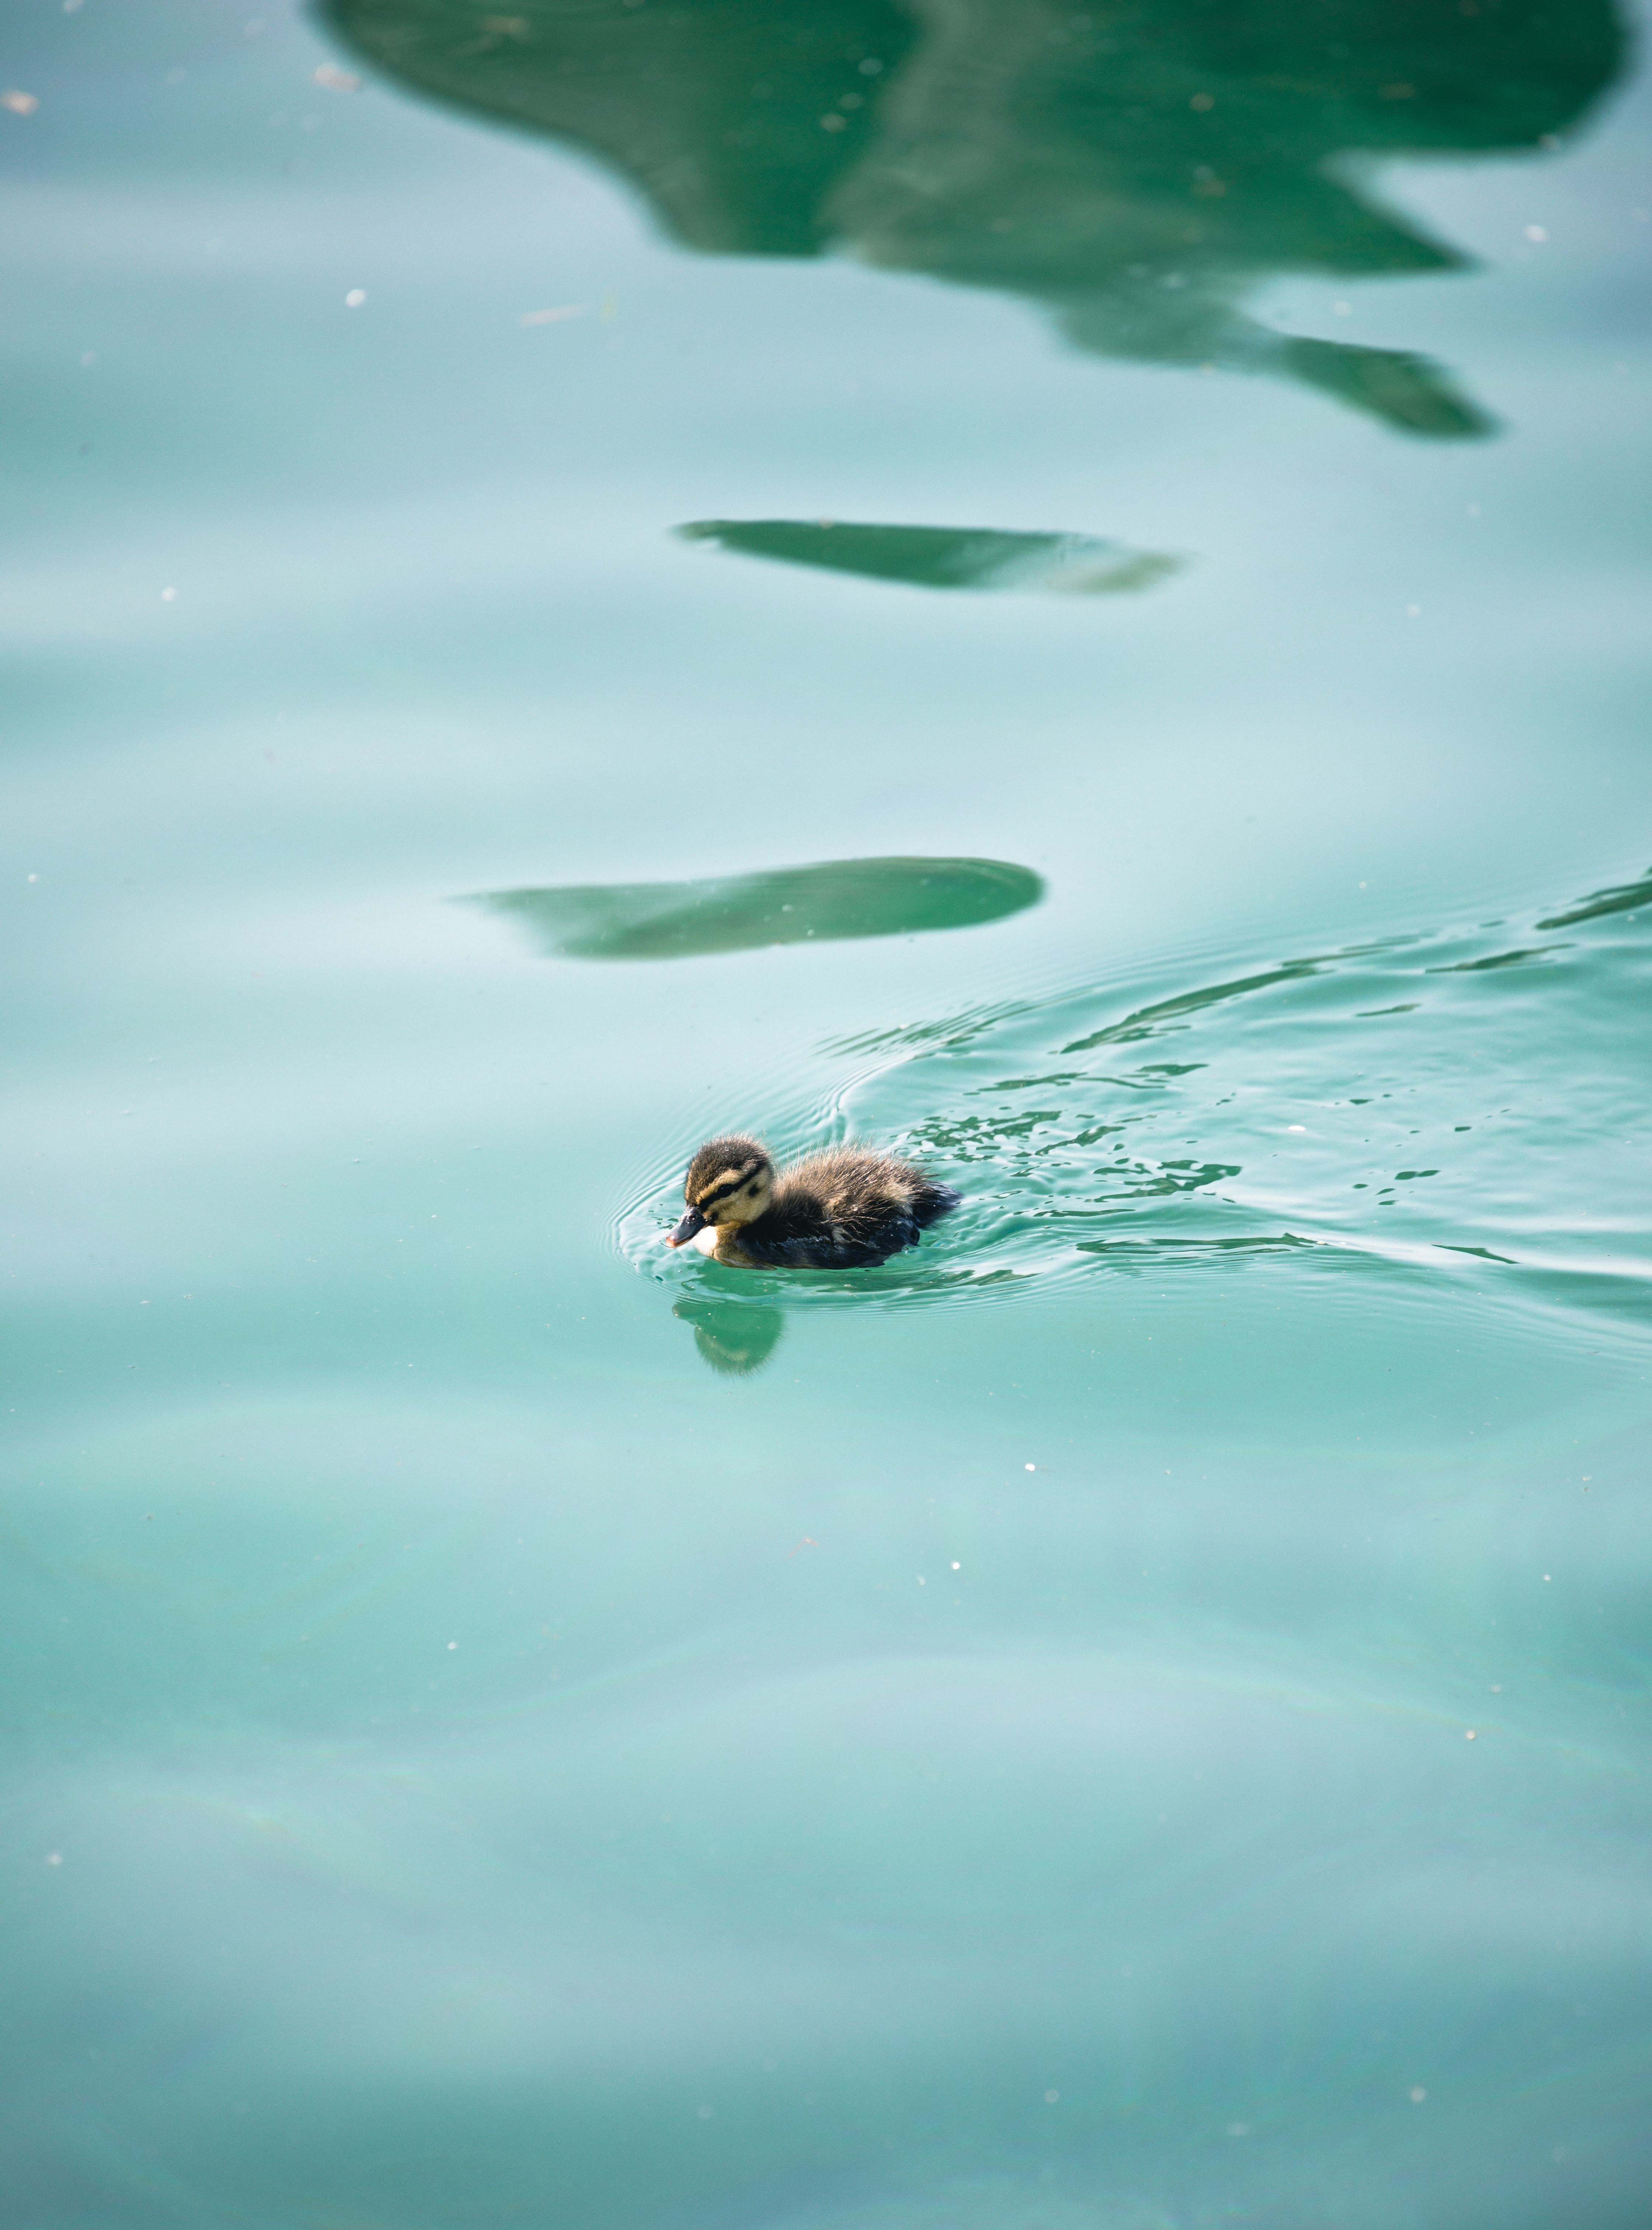 brown duckling swimming in water